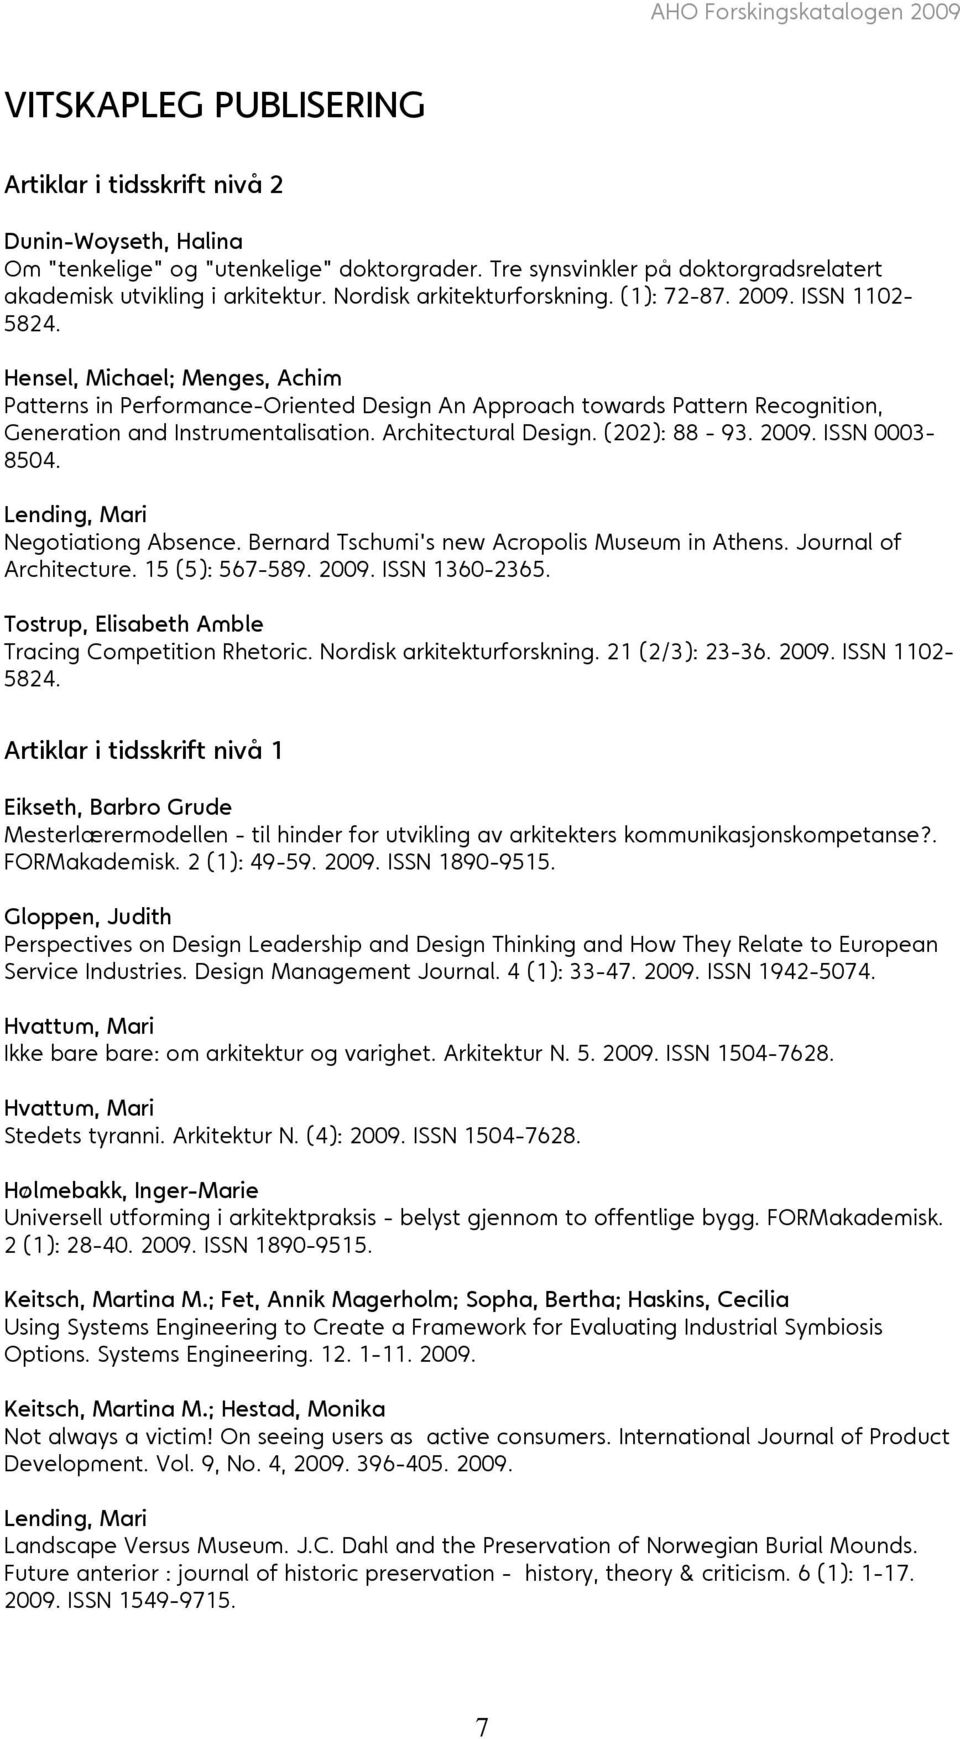 Hensel, Michael; Menges, Achim Patterns in Performance-Oriented Design An Approach towards Pattern Recognition, Generation and Instrumentalisation. Architectural Design. (202): 88-93. 2009.